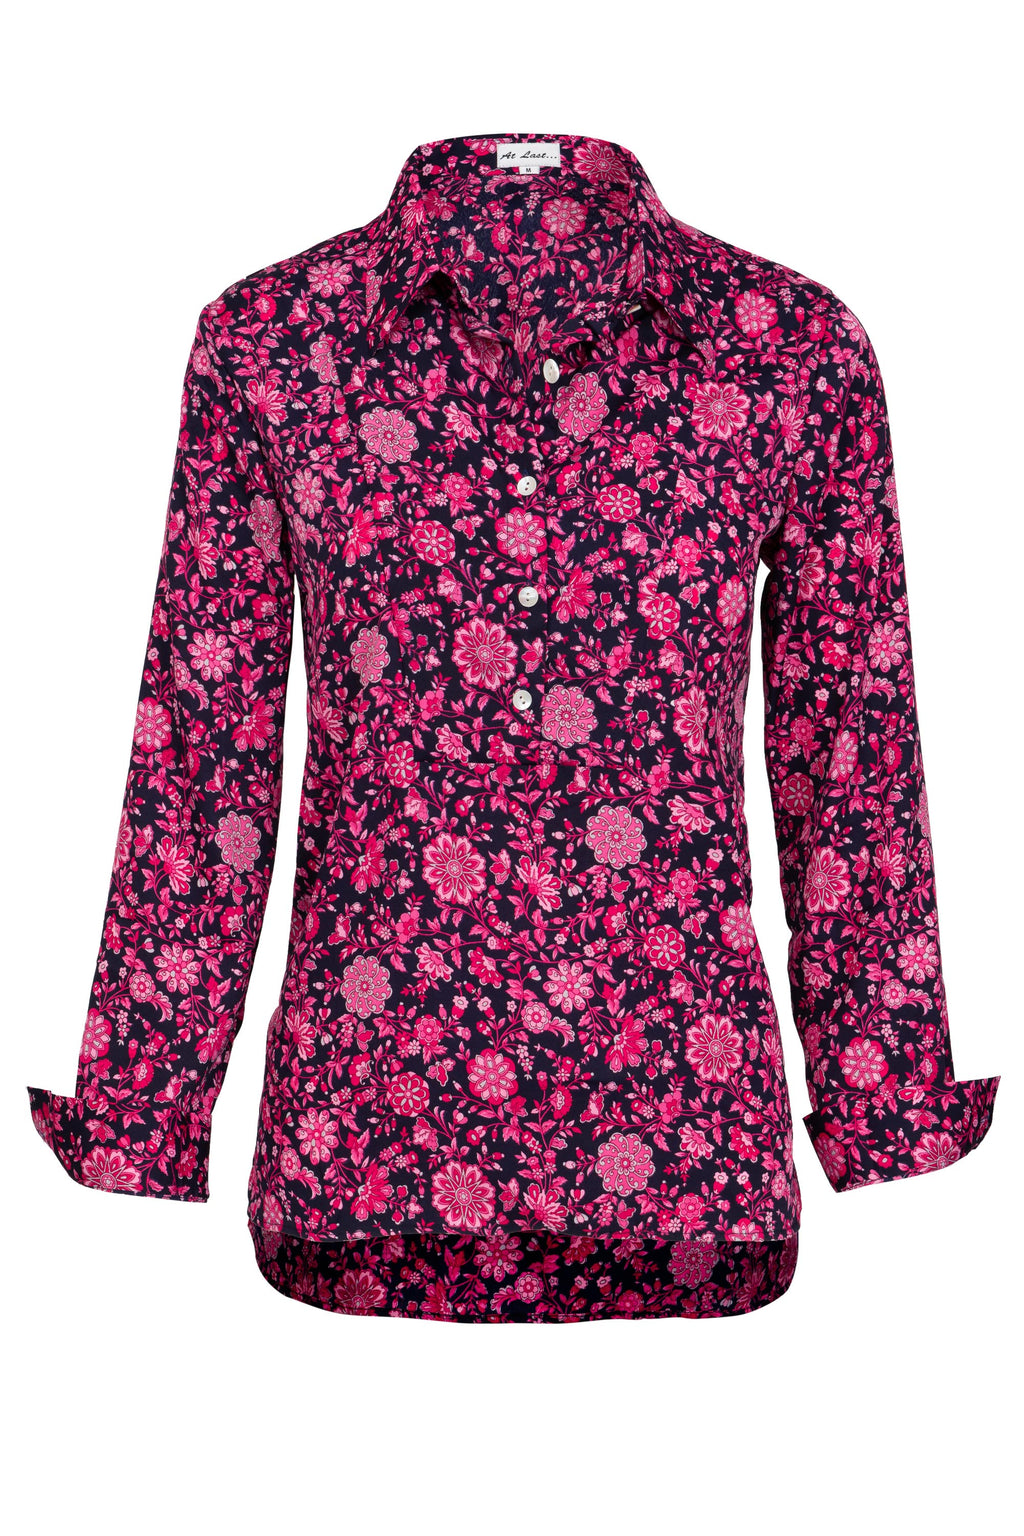 Soho Shirt with Back Detail- Pink Flower